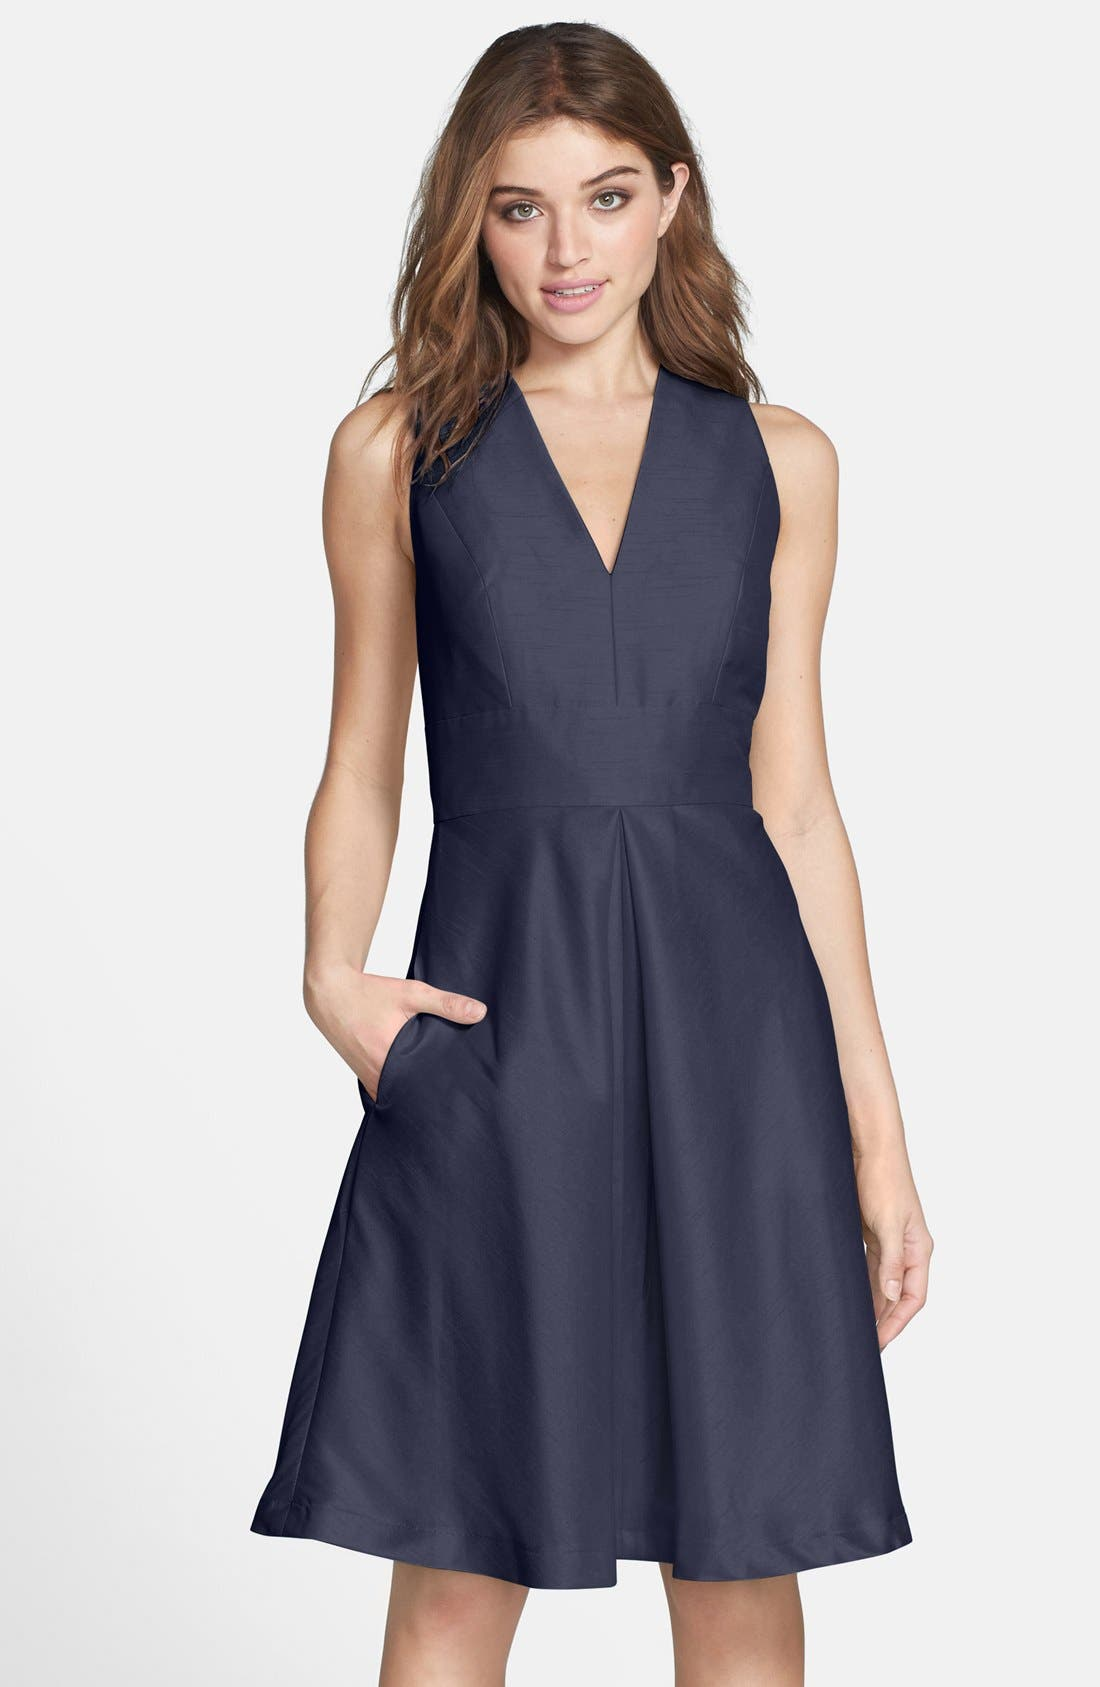 Women's Short Bridesmaid Dresses | Nordstrom